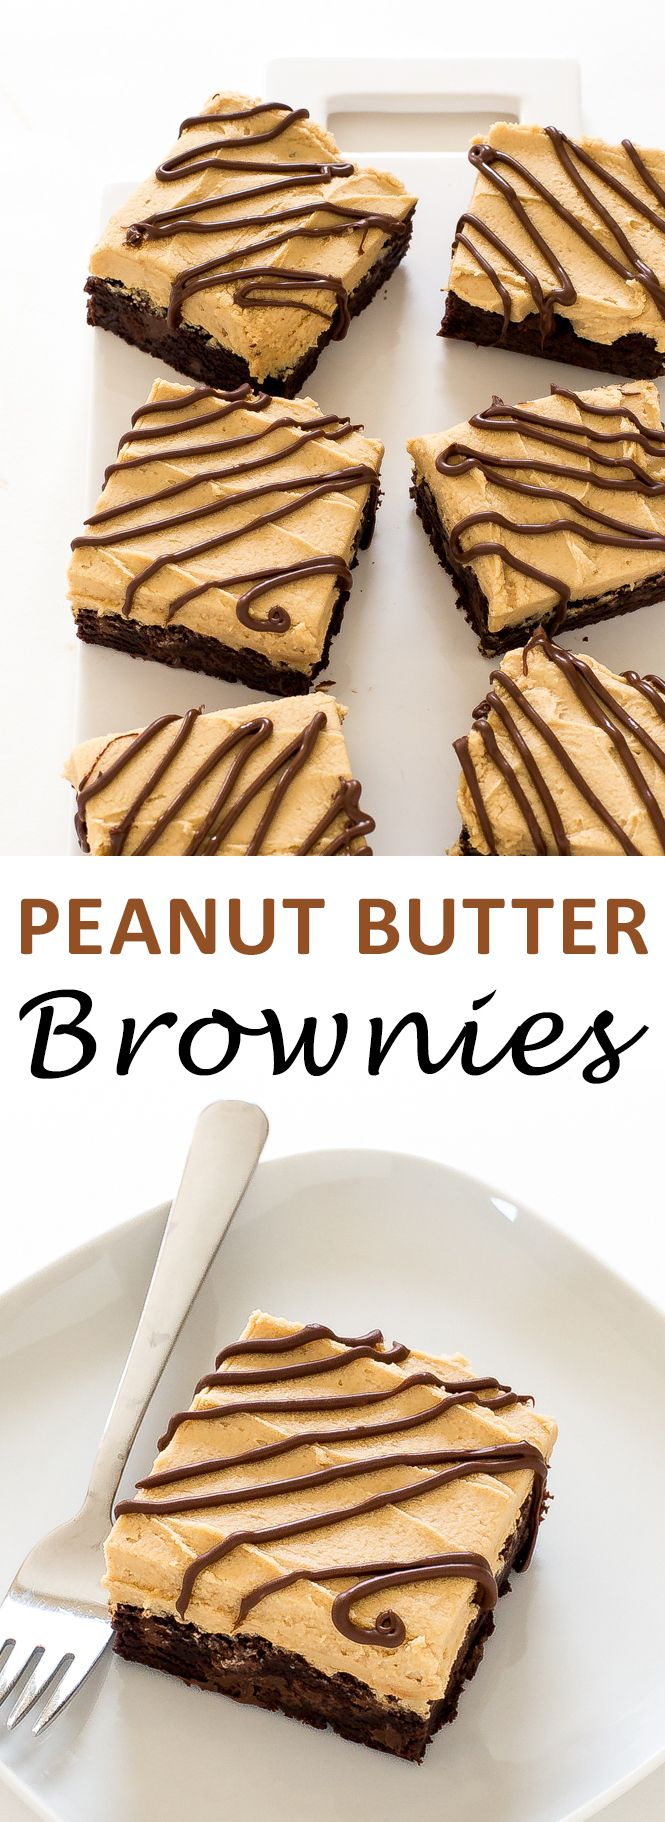 Super Rich & Decadant Chocolate Brownies with Peanut Butter Frosting. The BEST brownie you will ever have! | chefsavvy.com #recipe #dessert #peanut #butter #brownie #chocolate